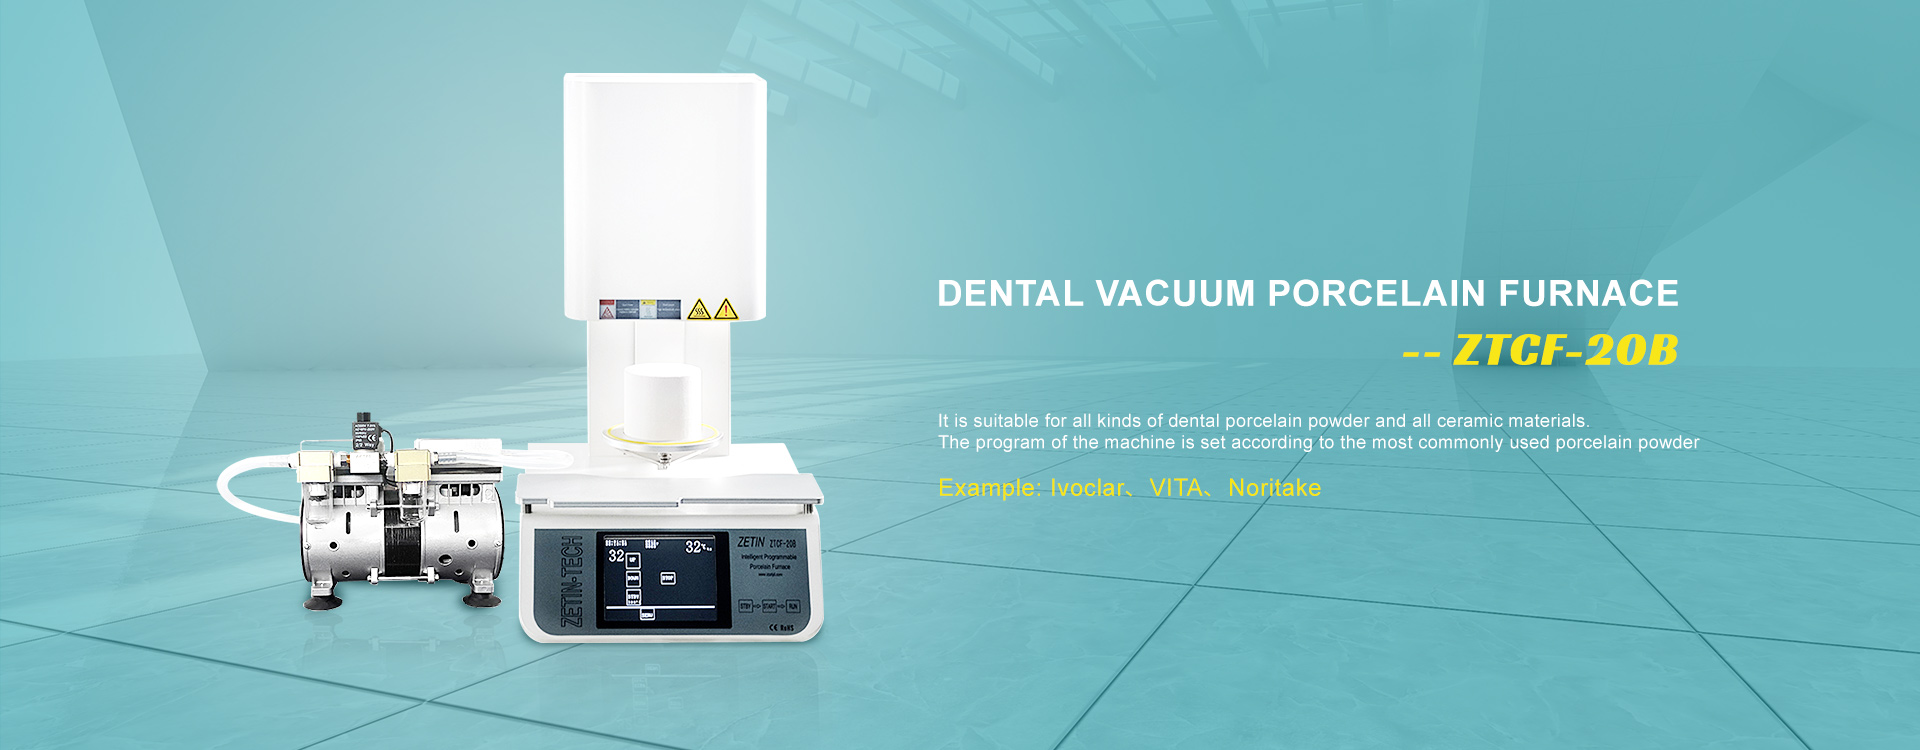 Vacuum Dental Porcelain Furnace